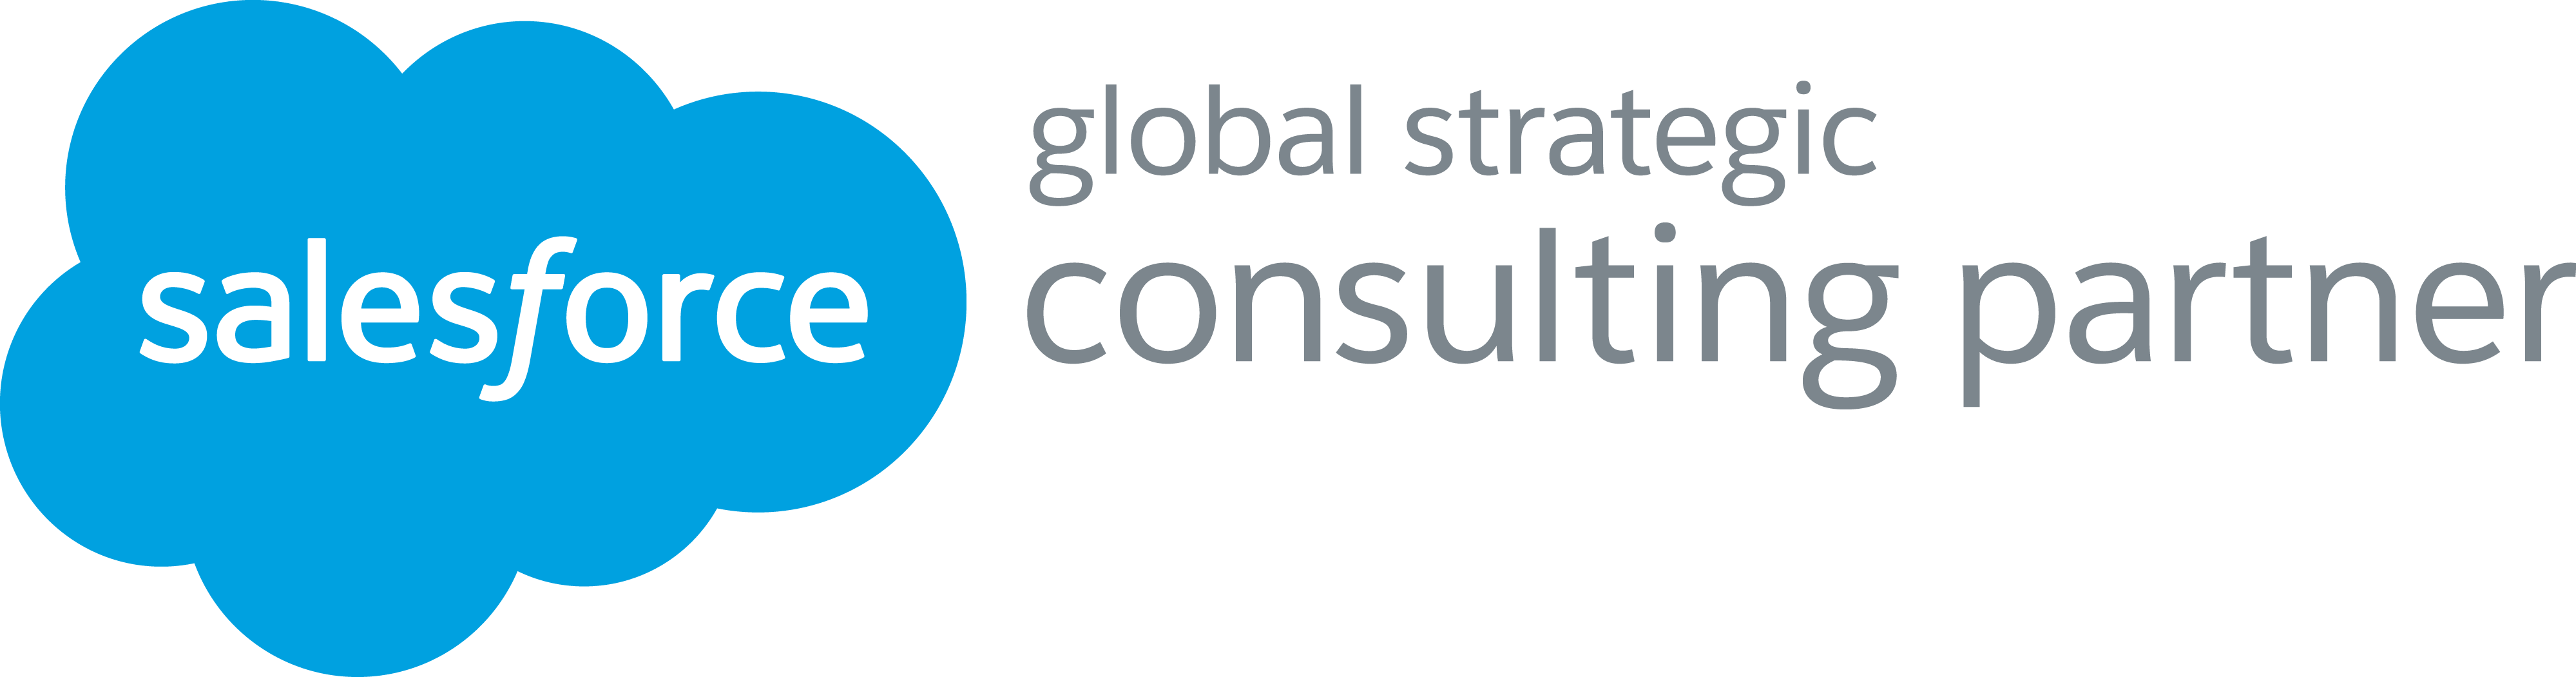 Salesforce Global Strategic Consulting Partner